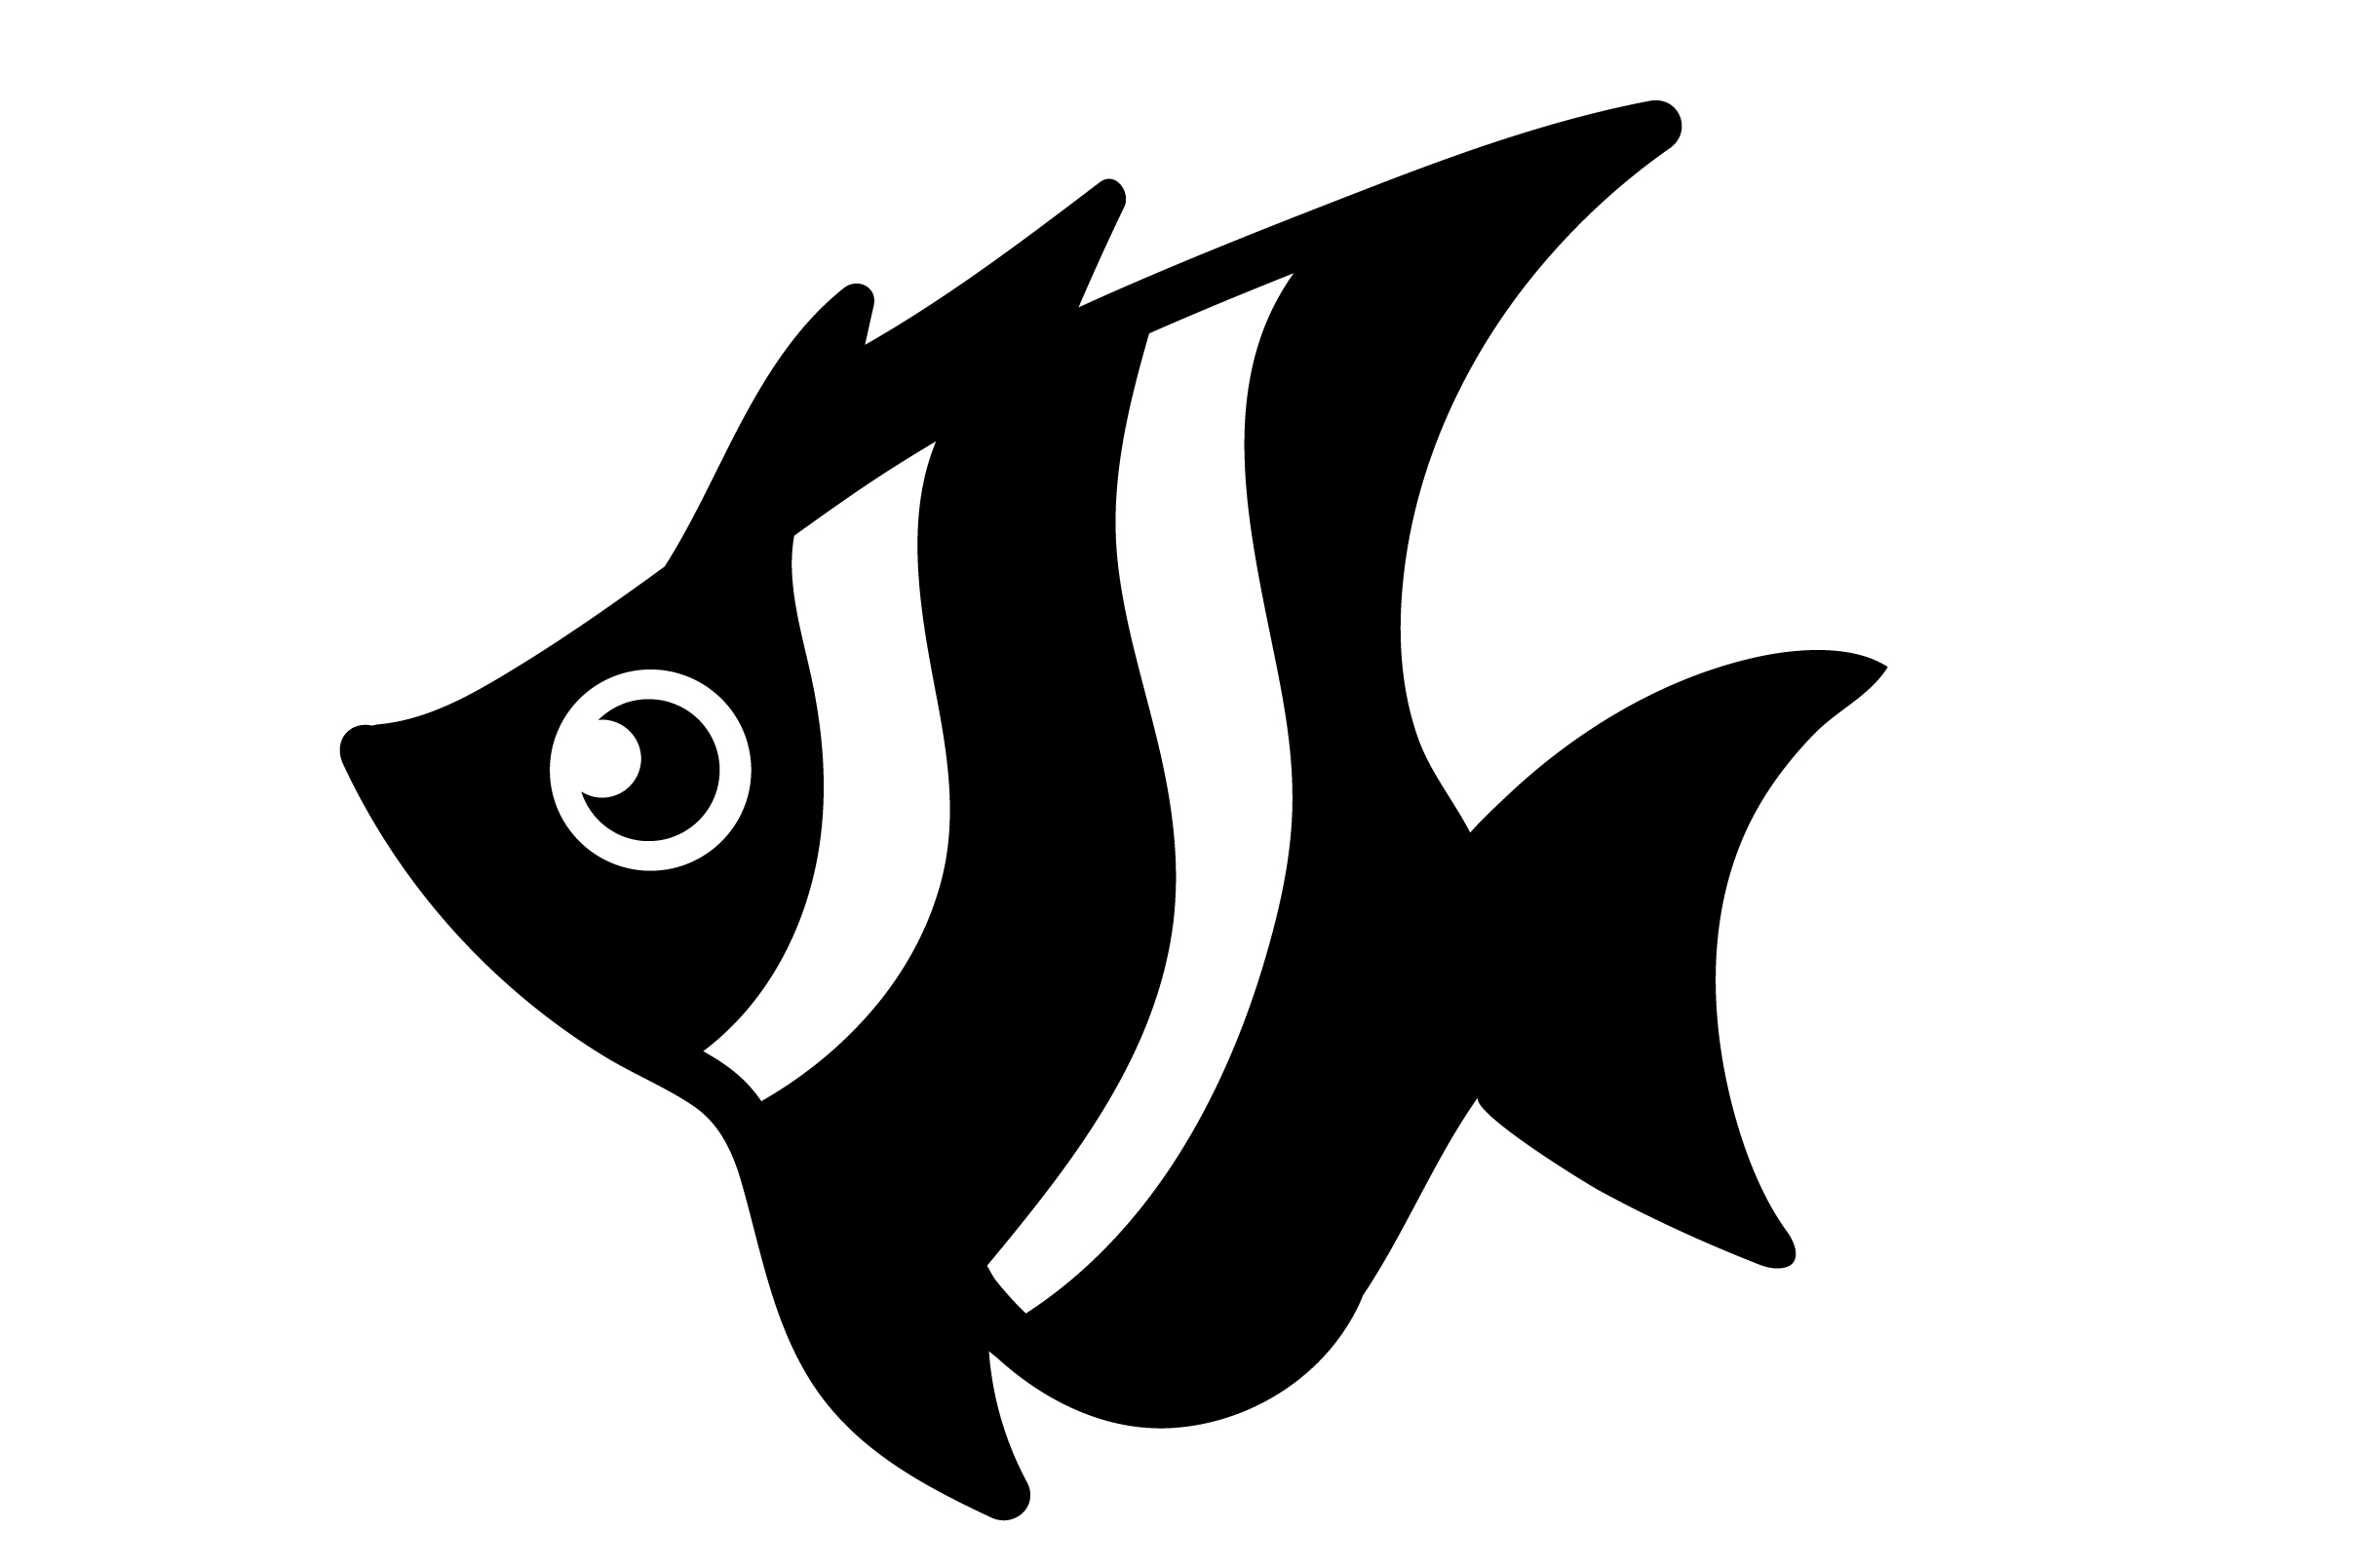 Download Free Fish Icon Graphic By Mine Eyes Design Creative Fabrica for Cricut Explore, Silhouette and other cutting machines.